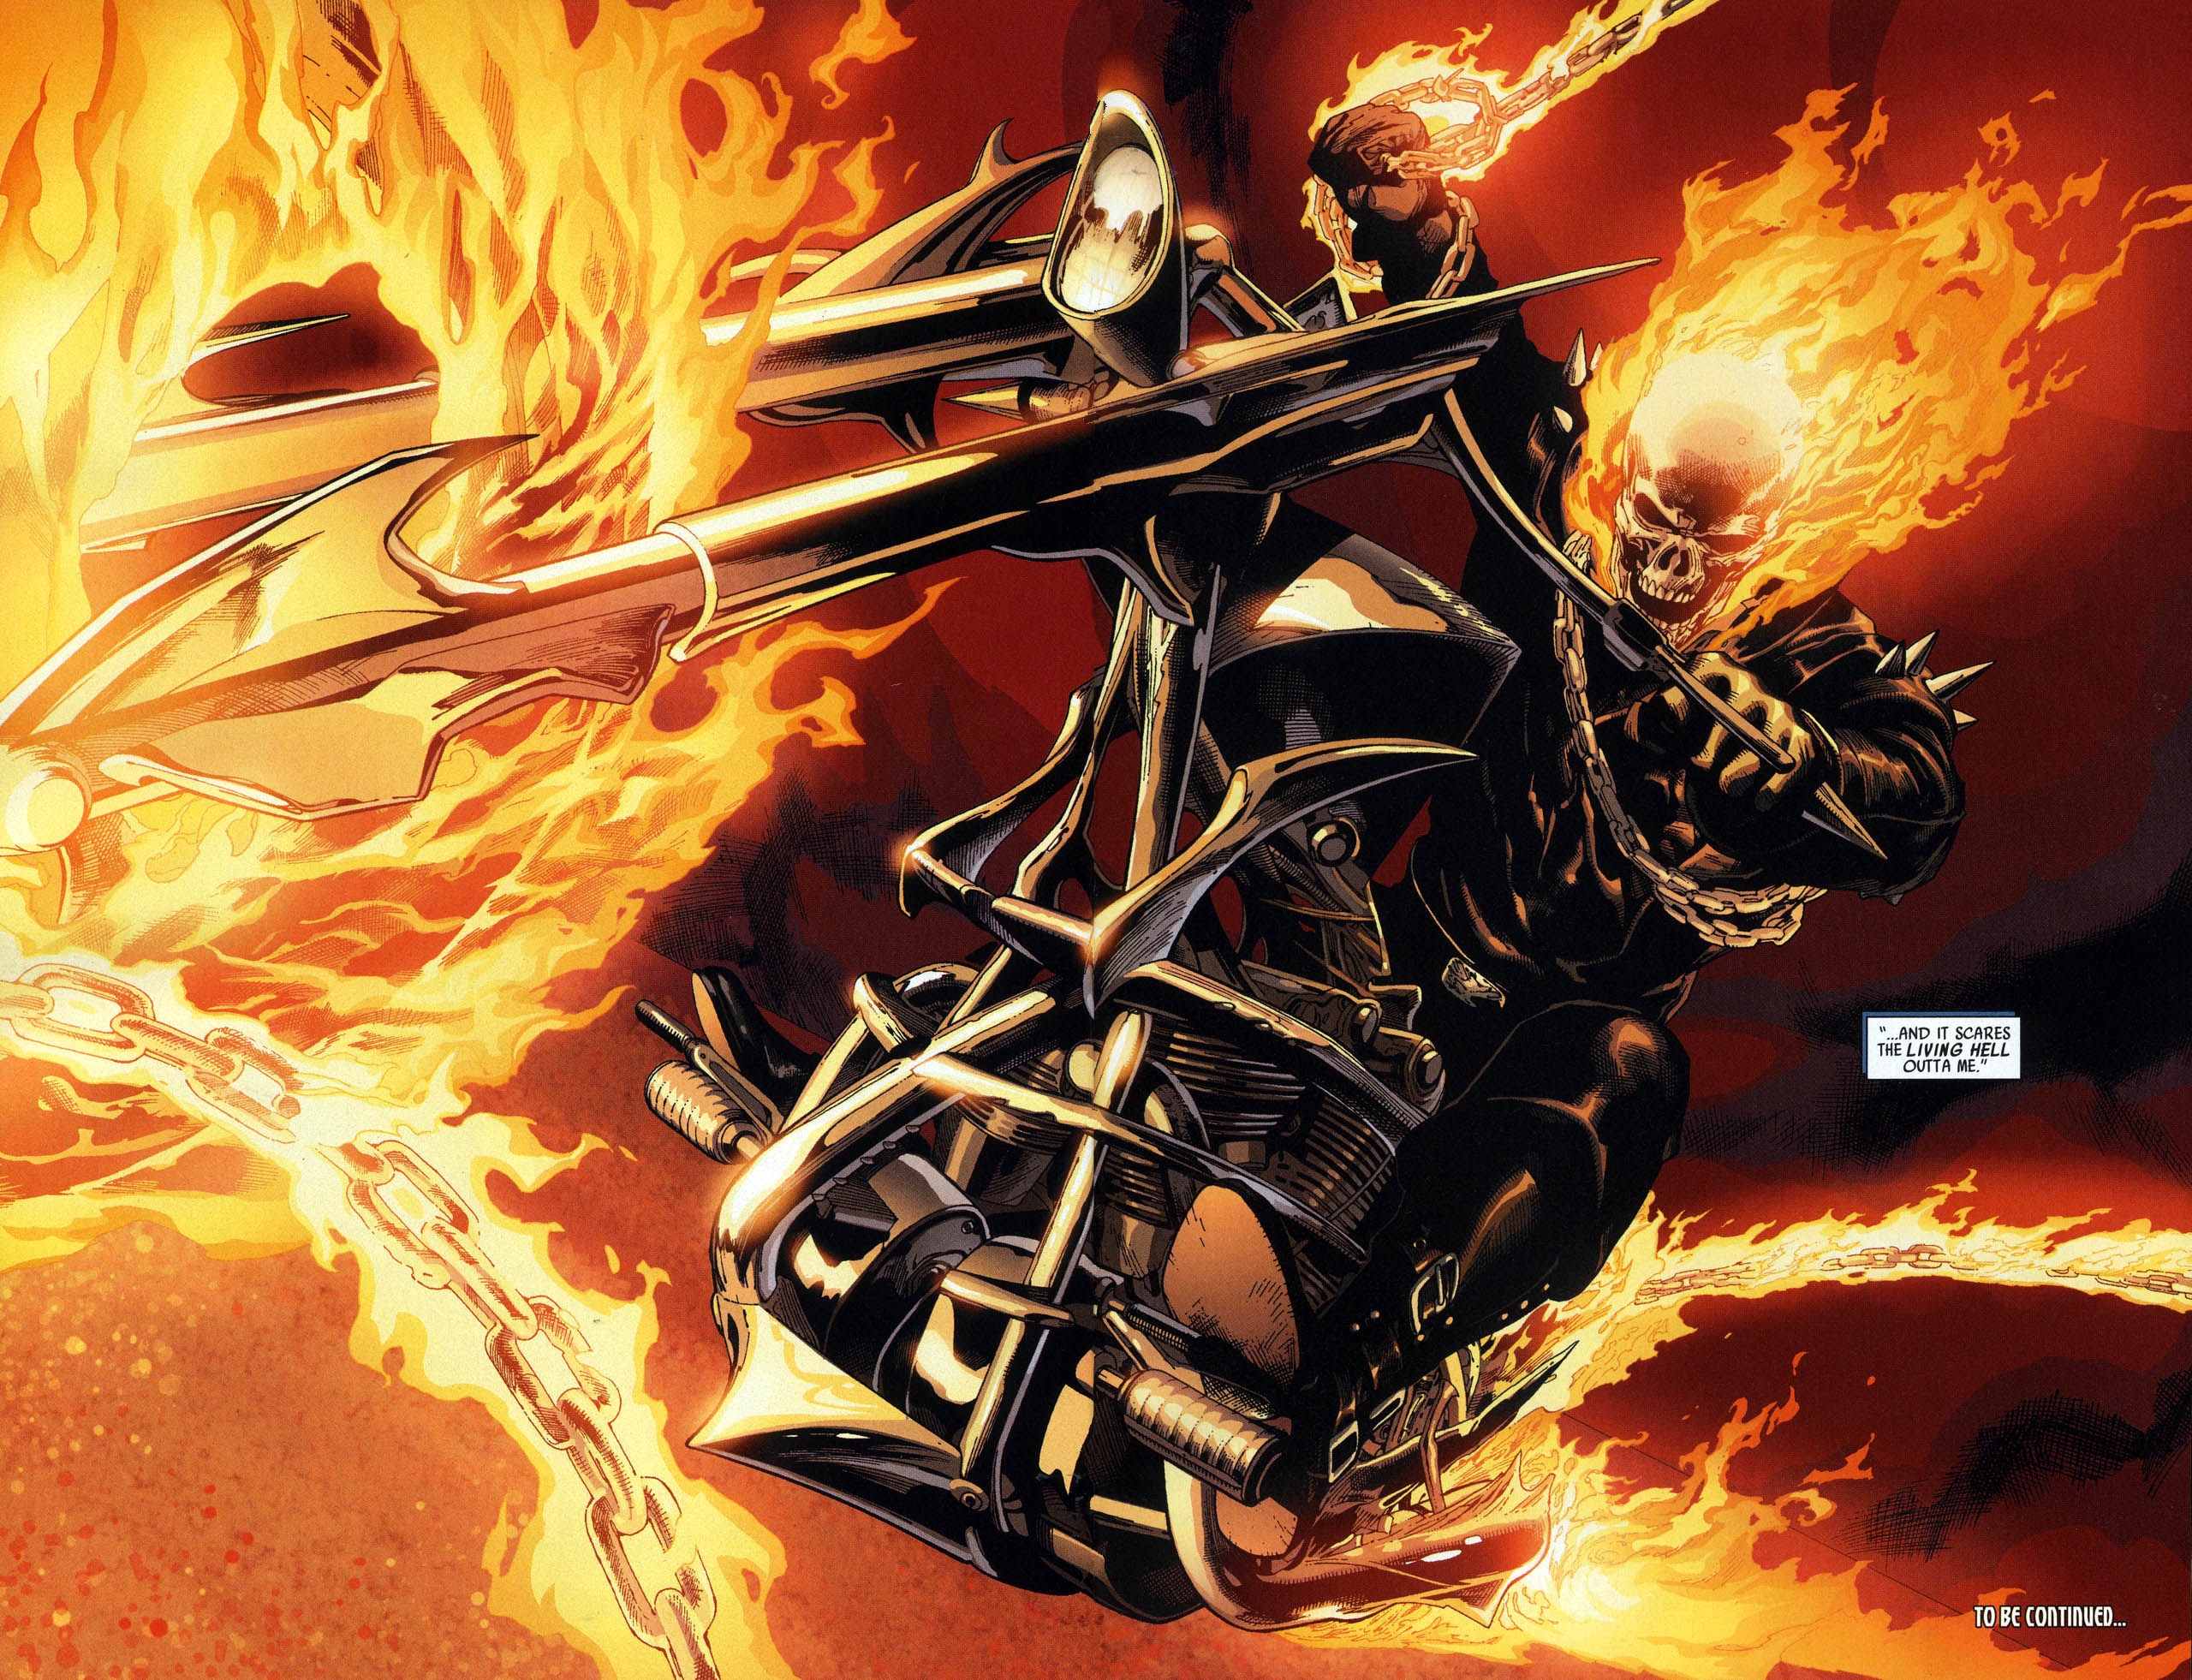 Ghost Rider in Ultimate Avengers 2 #2